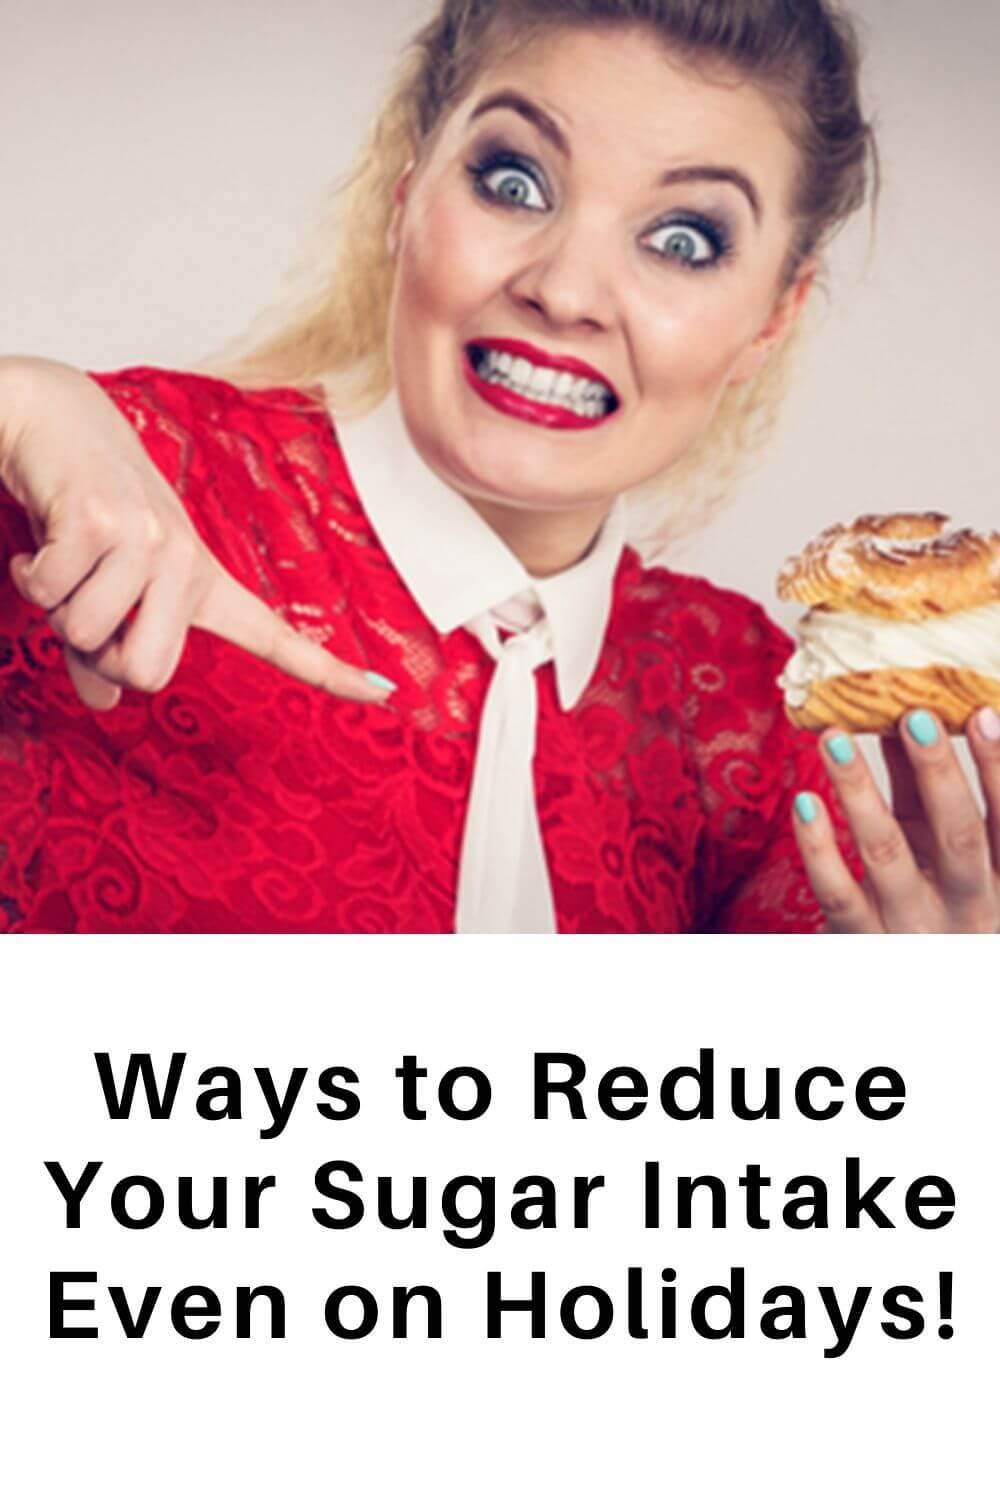 Ways to reduce your sugar intake even on holidays